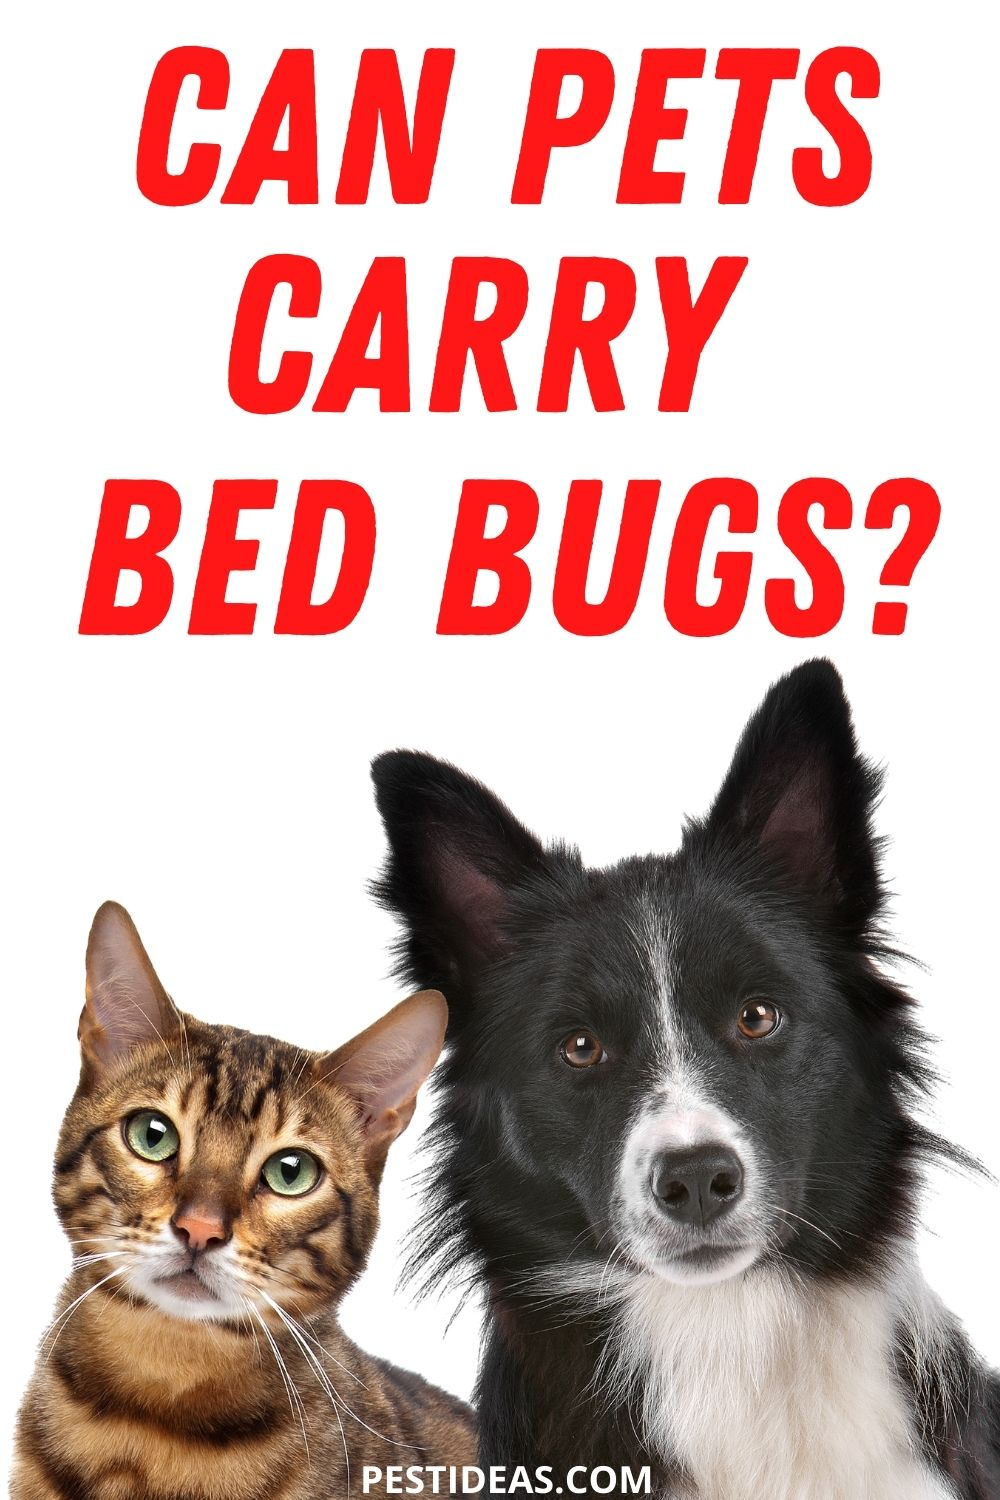 Can Pets Carry Bed Bugs